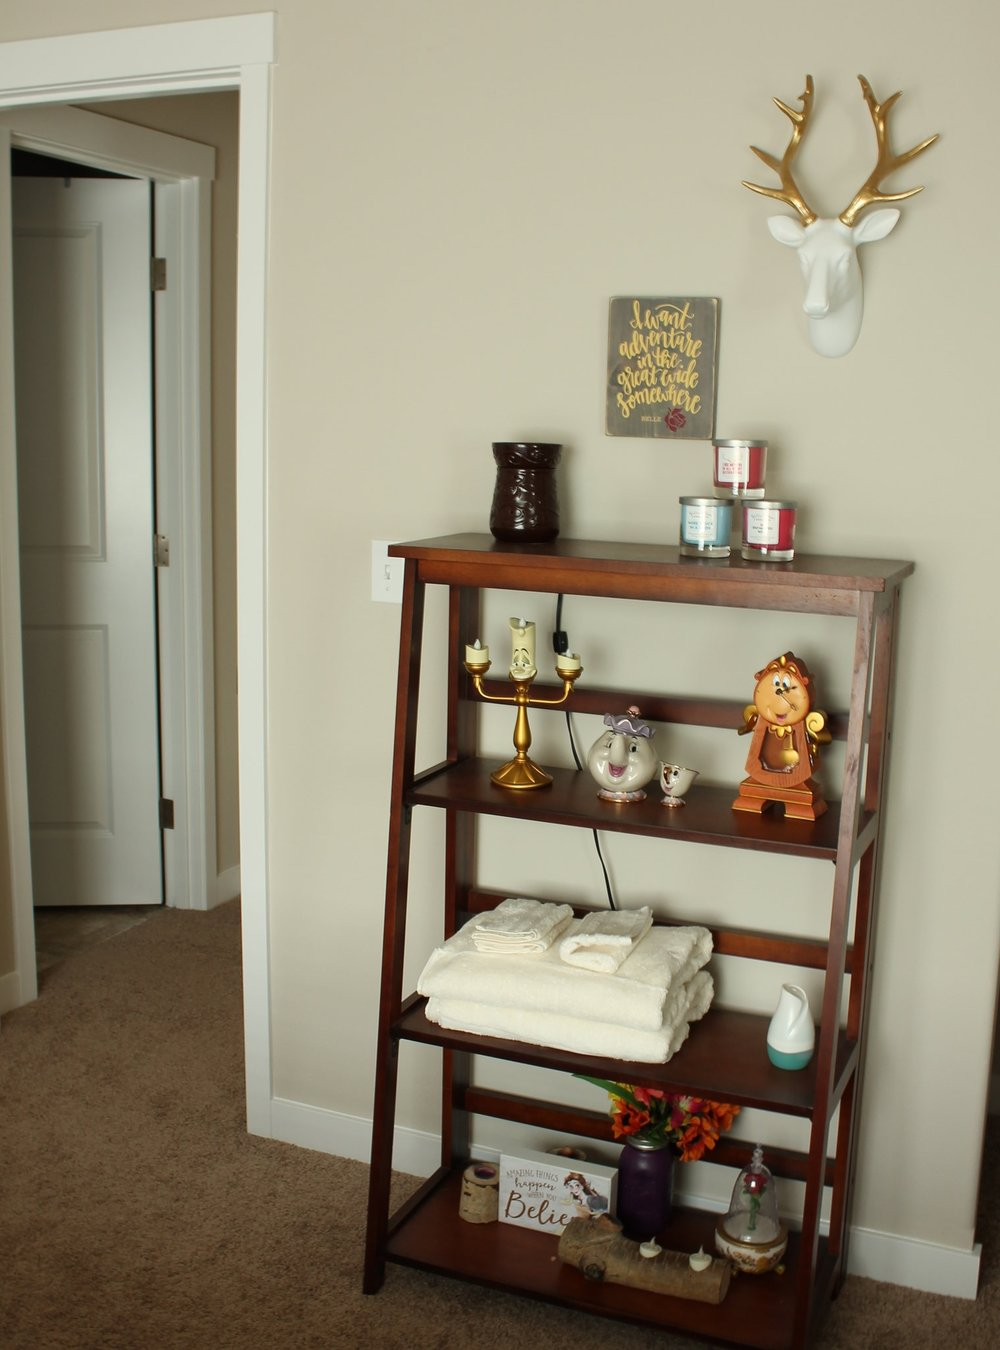 - This is my favorite park of the room, I've had this bookshelf for a while and I didn't want to clutter it!